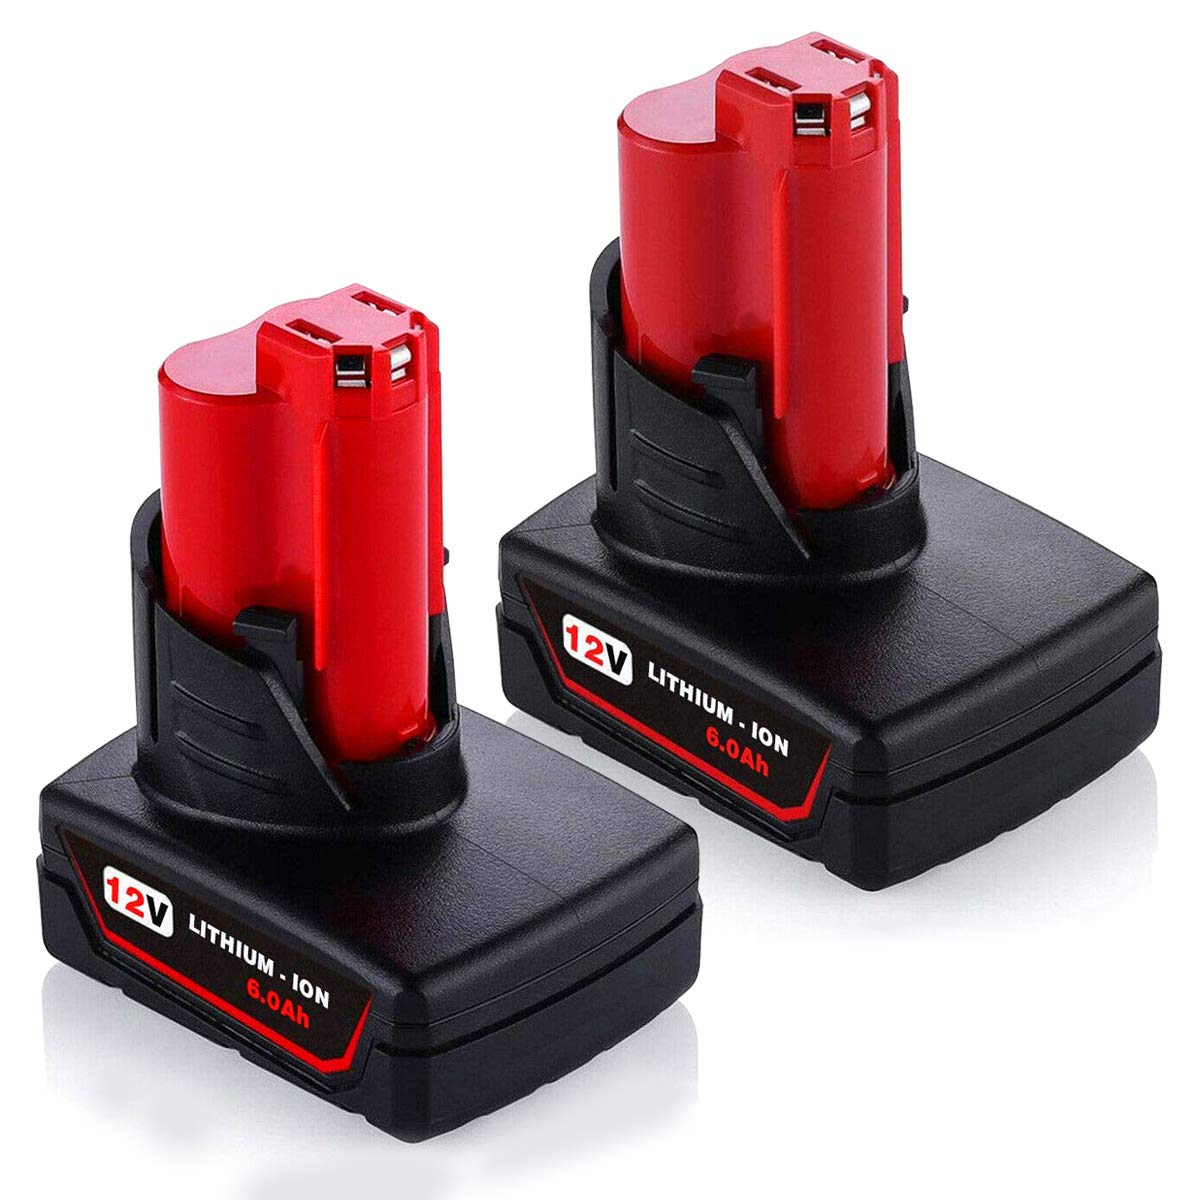 2Pack 6.0Ah Battery for Milwaukee, 12-Volt Lithium-ion Battery for Milwaukee 48-11-2411 Lithium